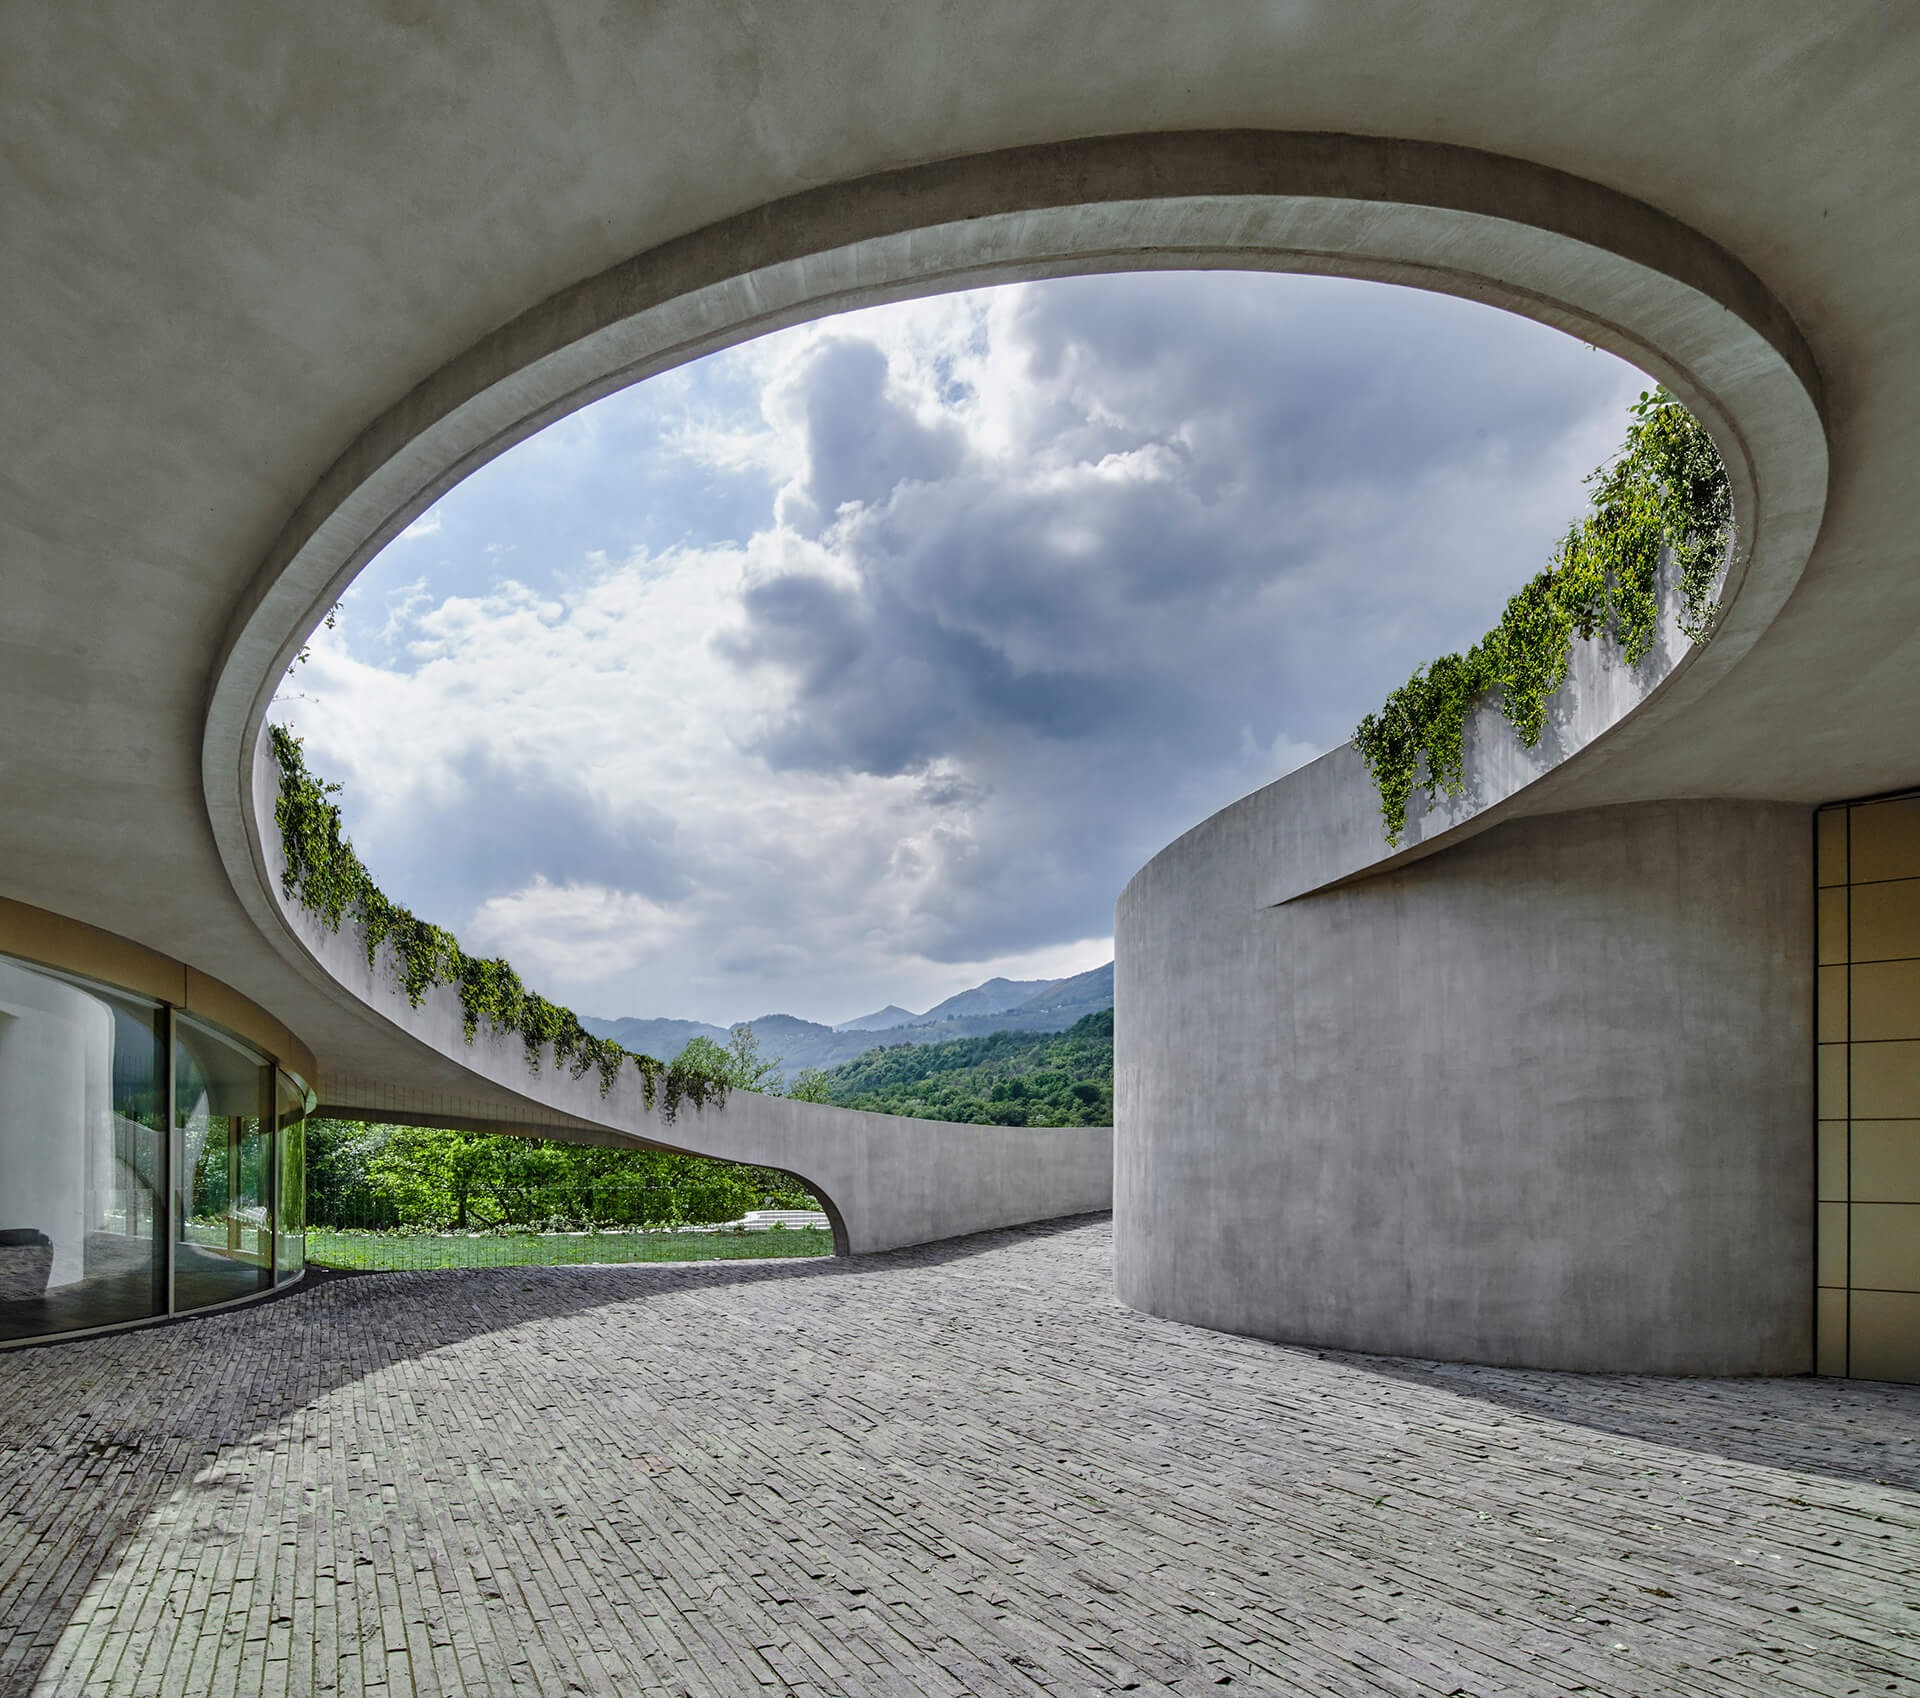 Reinforced concrete walls and roof planes, with vegetation spilling over onto the façade | Atelier Alice Trepp by Mino Caggiula Architects | STIRworld